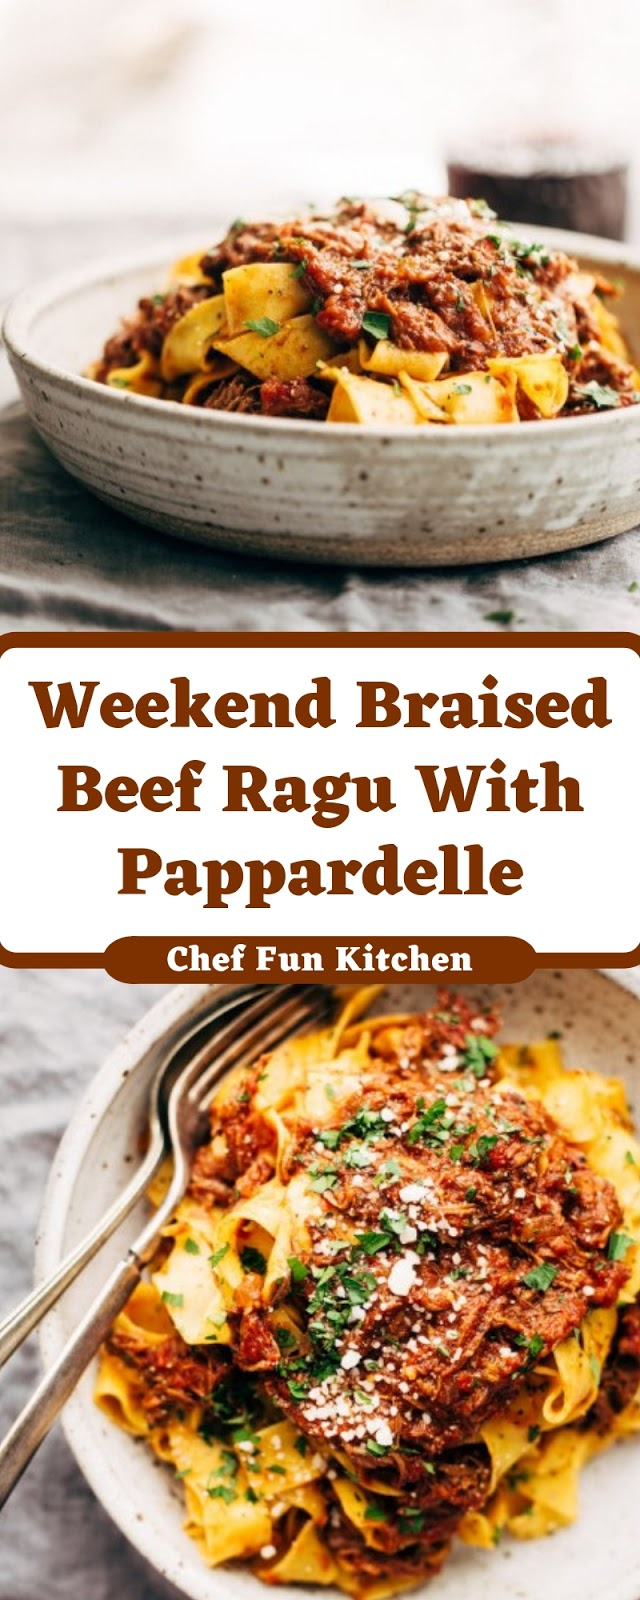 Weekend Braised Beef Ragu With Pappardelle